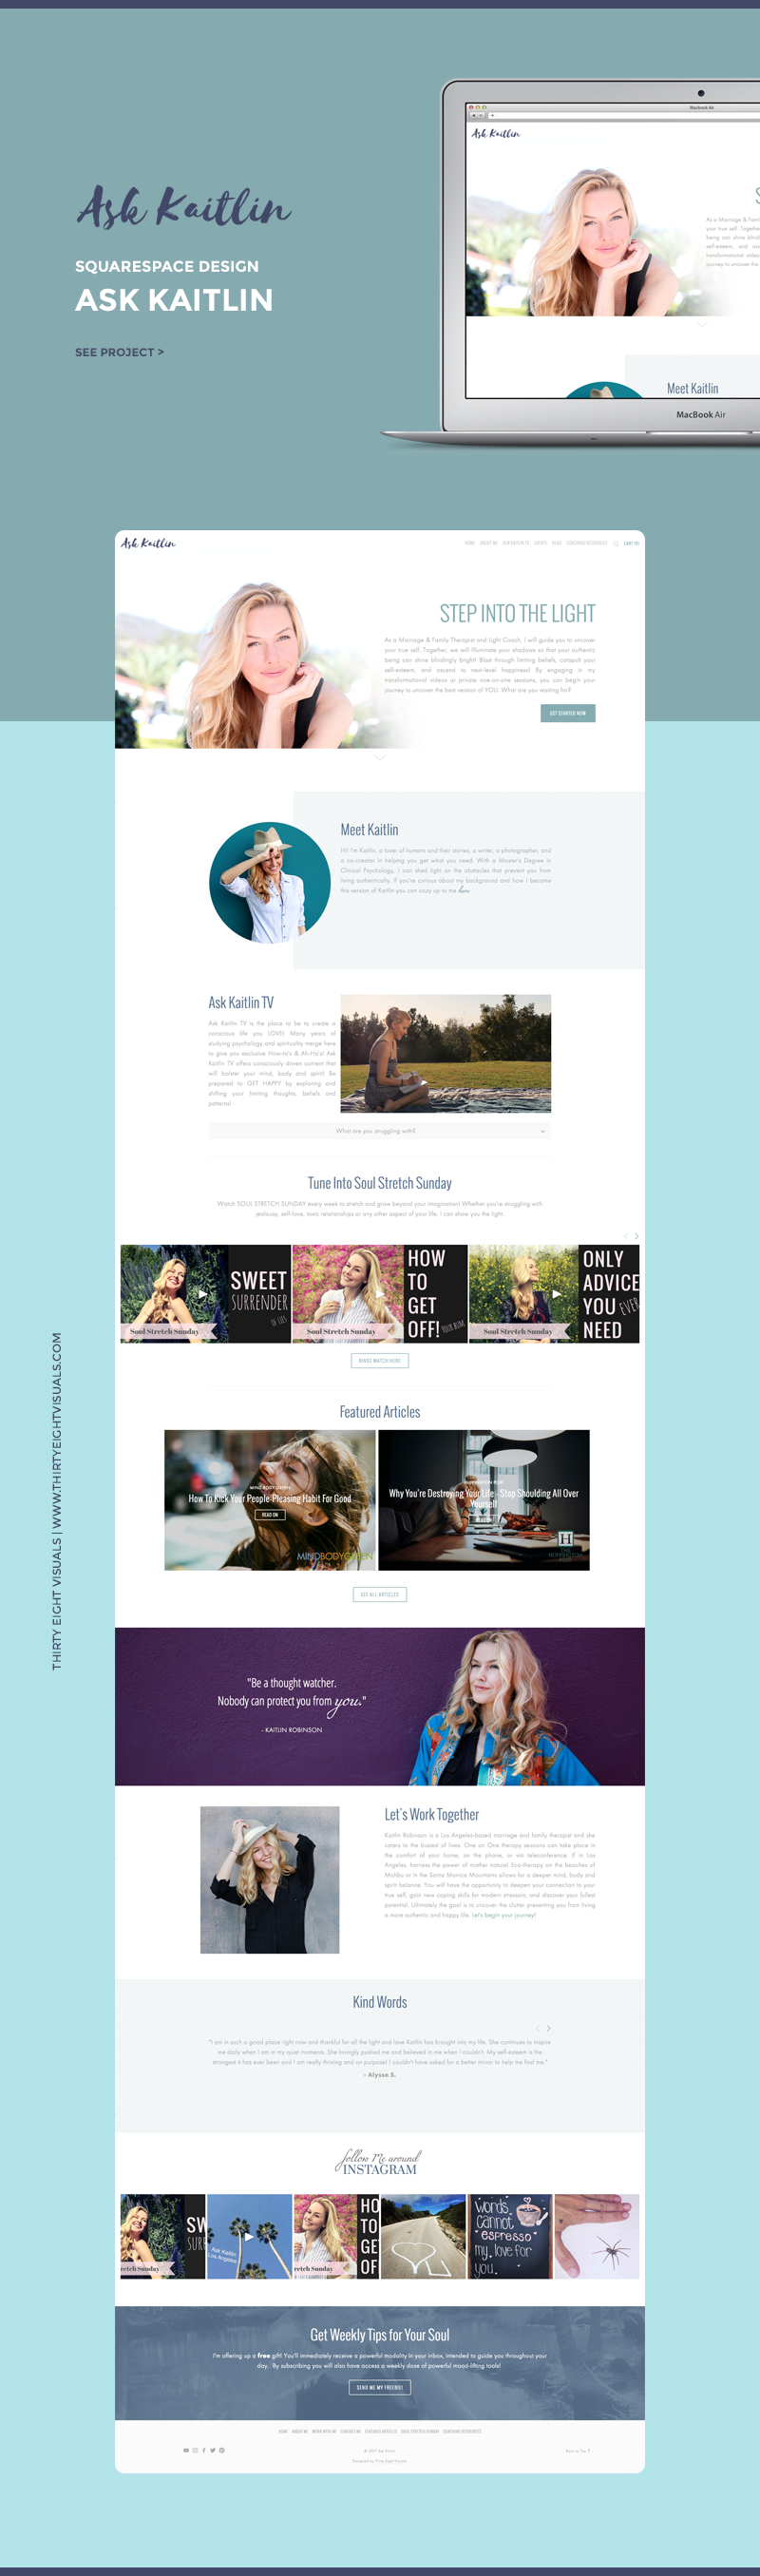 Ask Kaitlin Custom Squarespace design.jpg